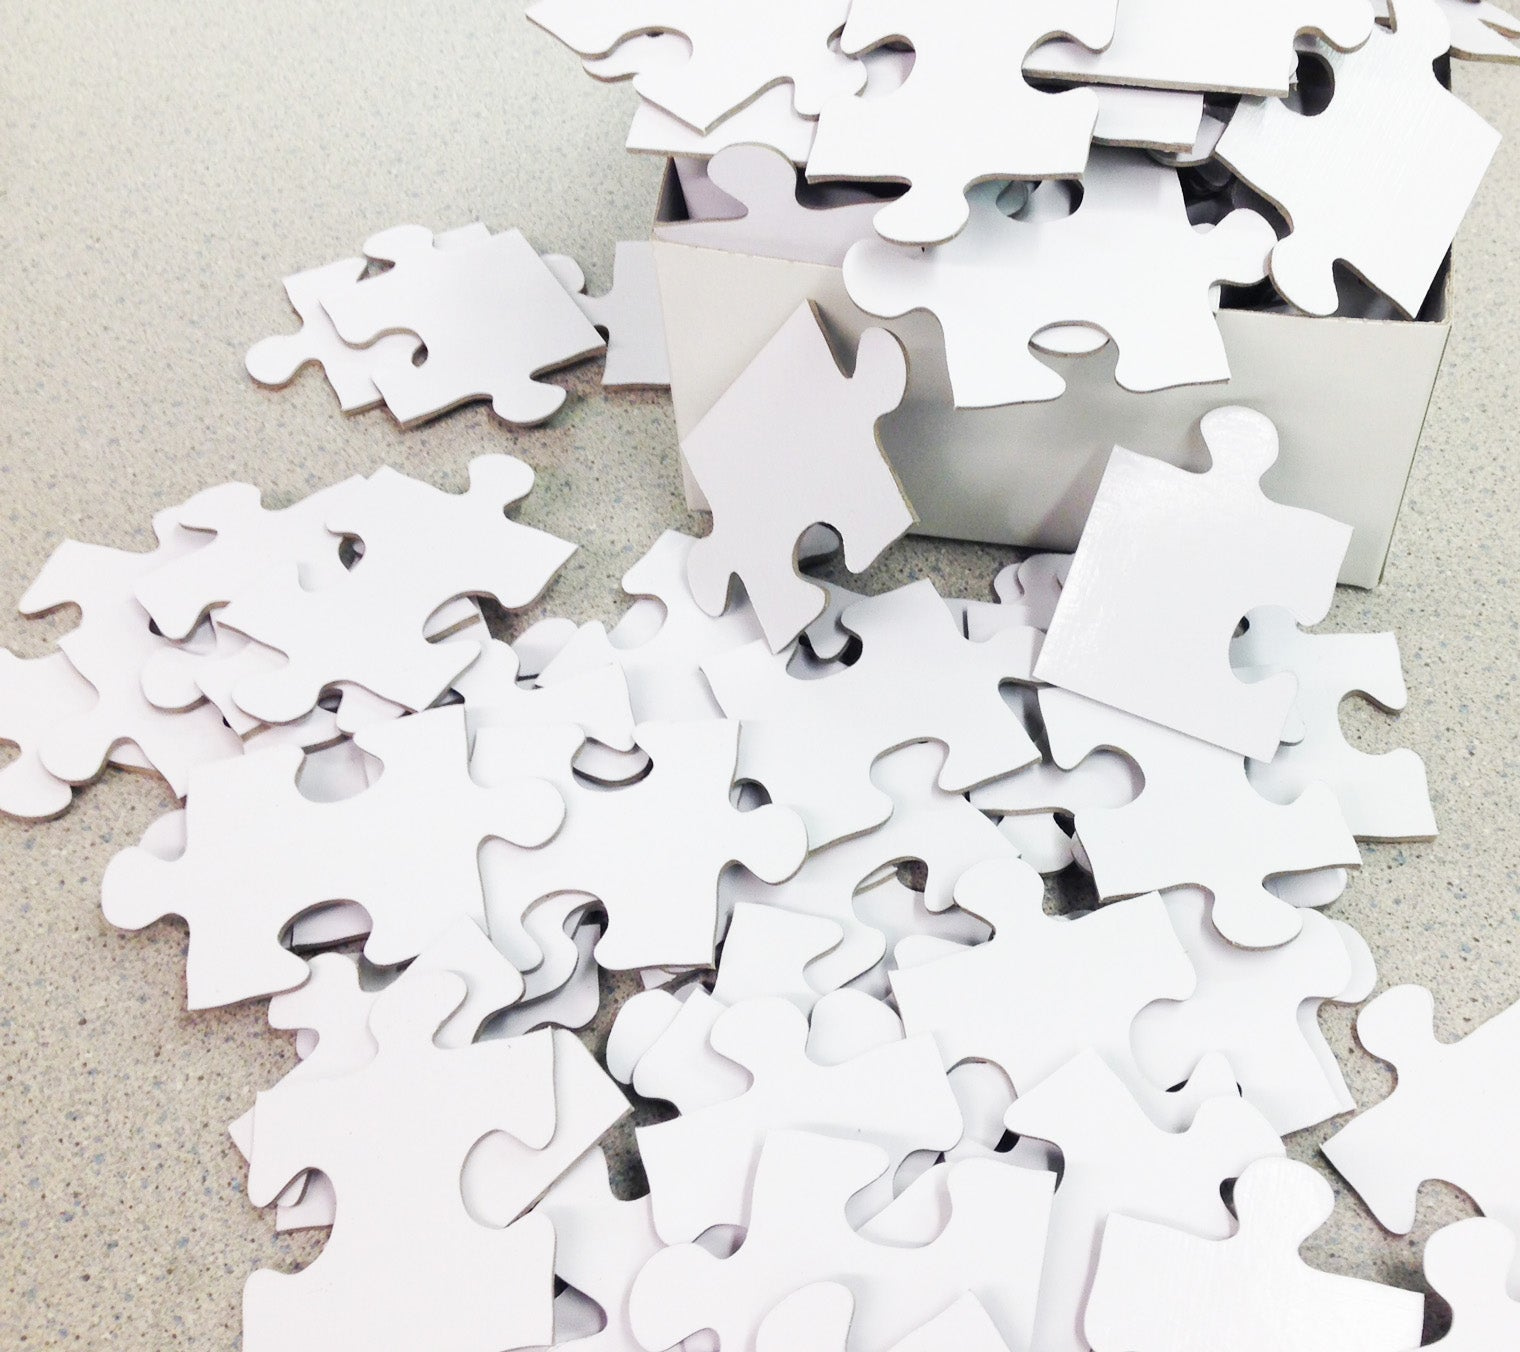 White Puzzle Pieces for Wedding Puzzle - The Missing Piece Puzzle Company